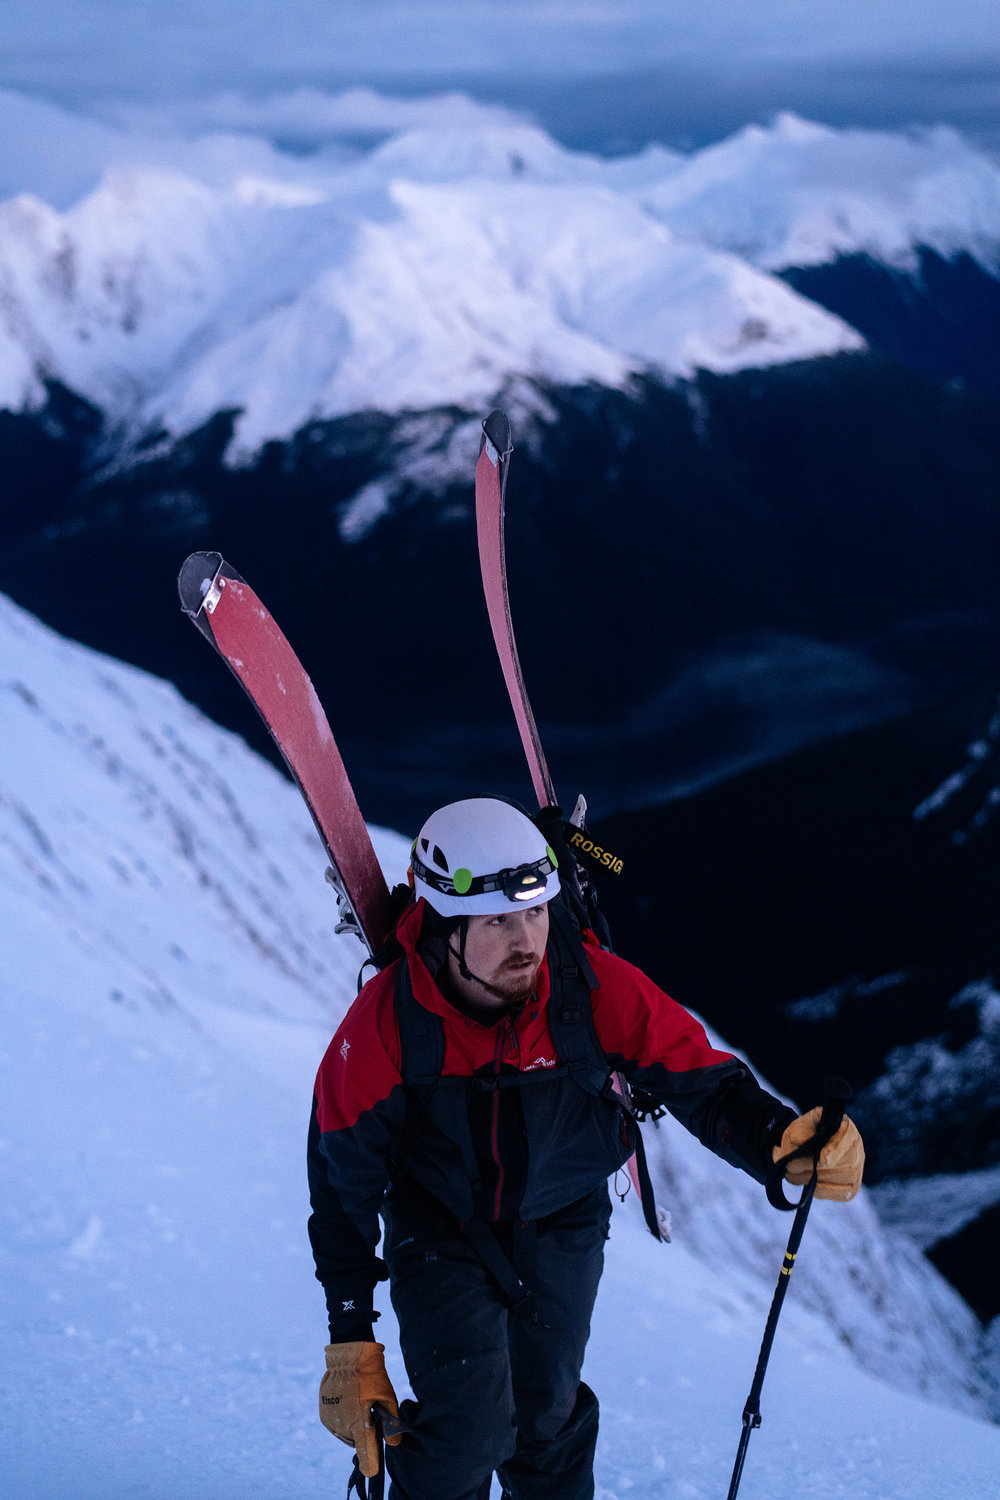 Brando and I met through Instagram; he became a great partner during my ski-mountaineering season in New Zealand.